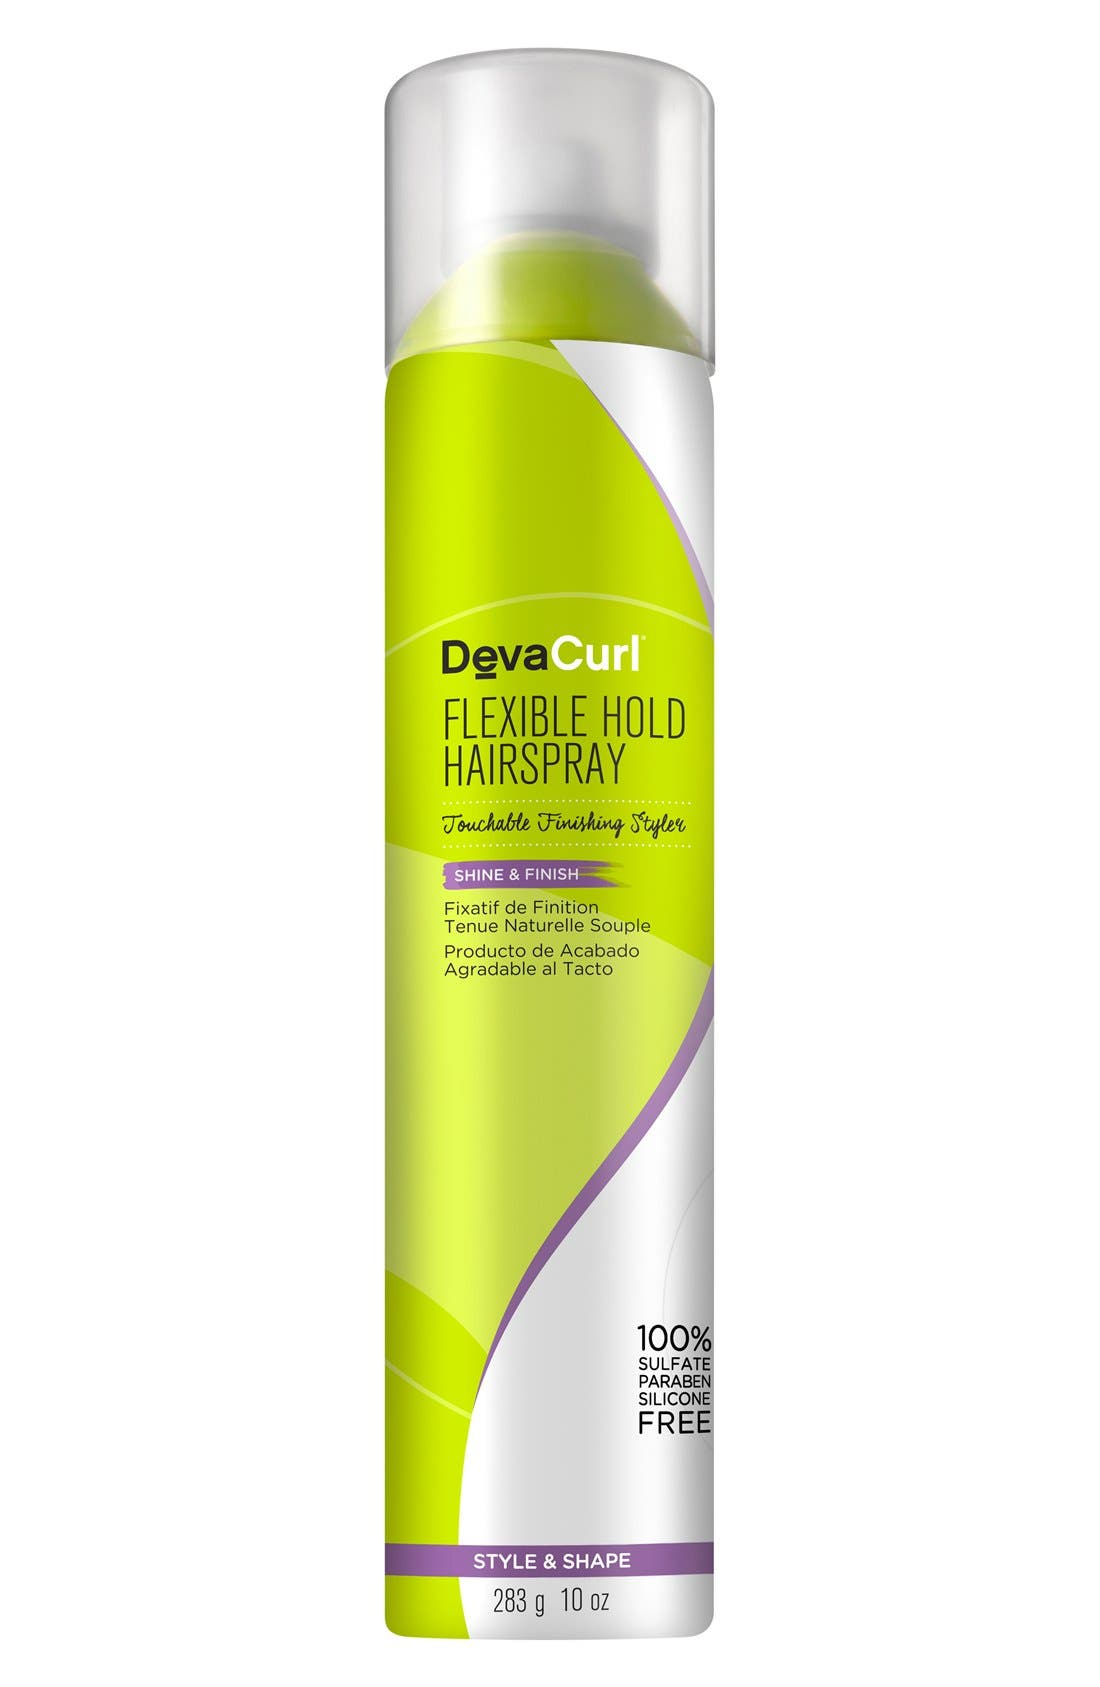 DEVACURL Flexible Hold Hairspray Touchable Finishing Styler, Main, color, NO COLOR